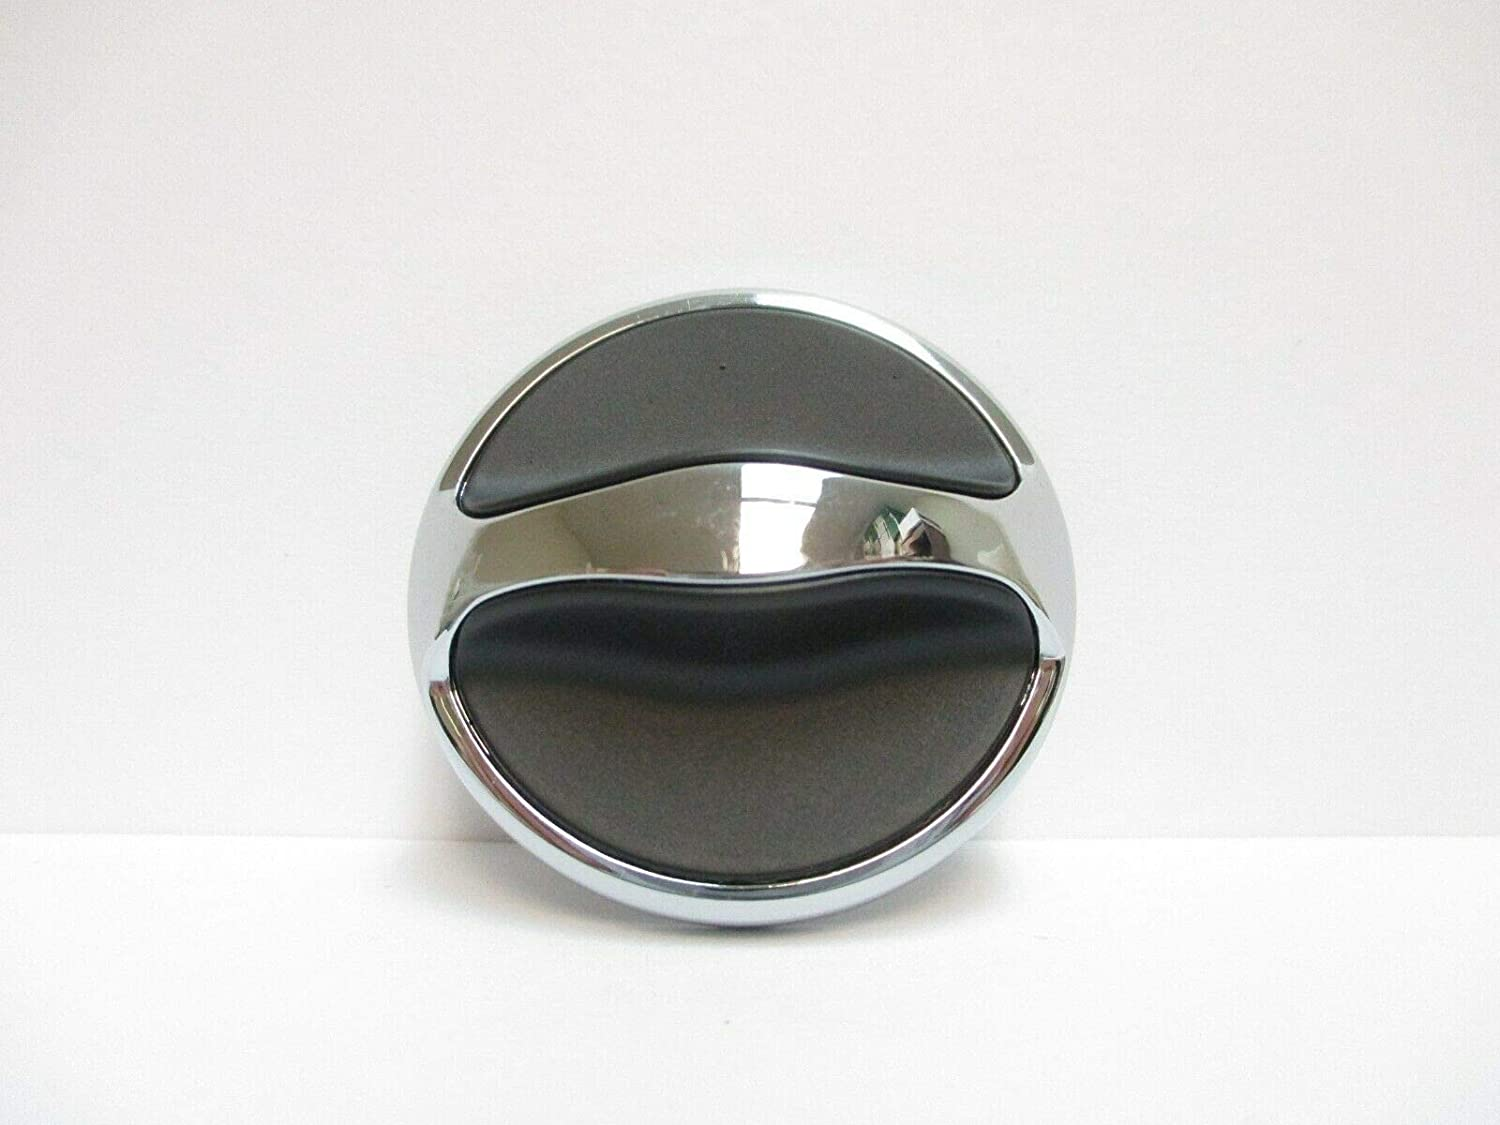 1 Penn Part # 52-purii3000 or 1308151 Drag Knob Fits Pursuit 3000 and 4000 for sale online